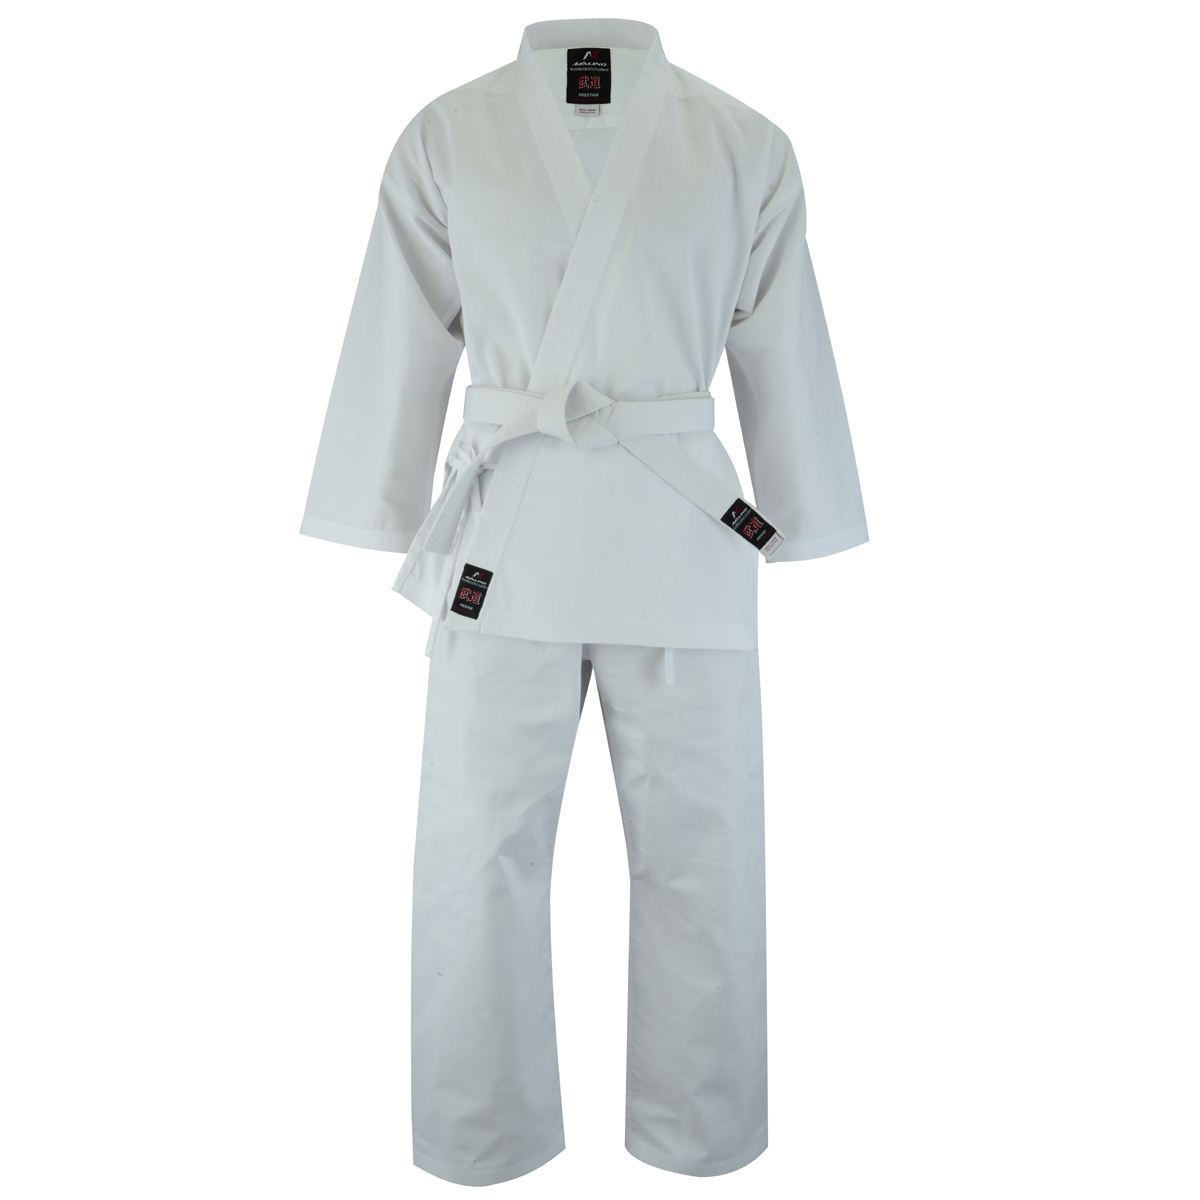 Malino Adult Student Karate Suit White - 7oz